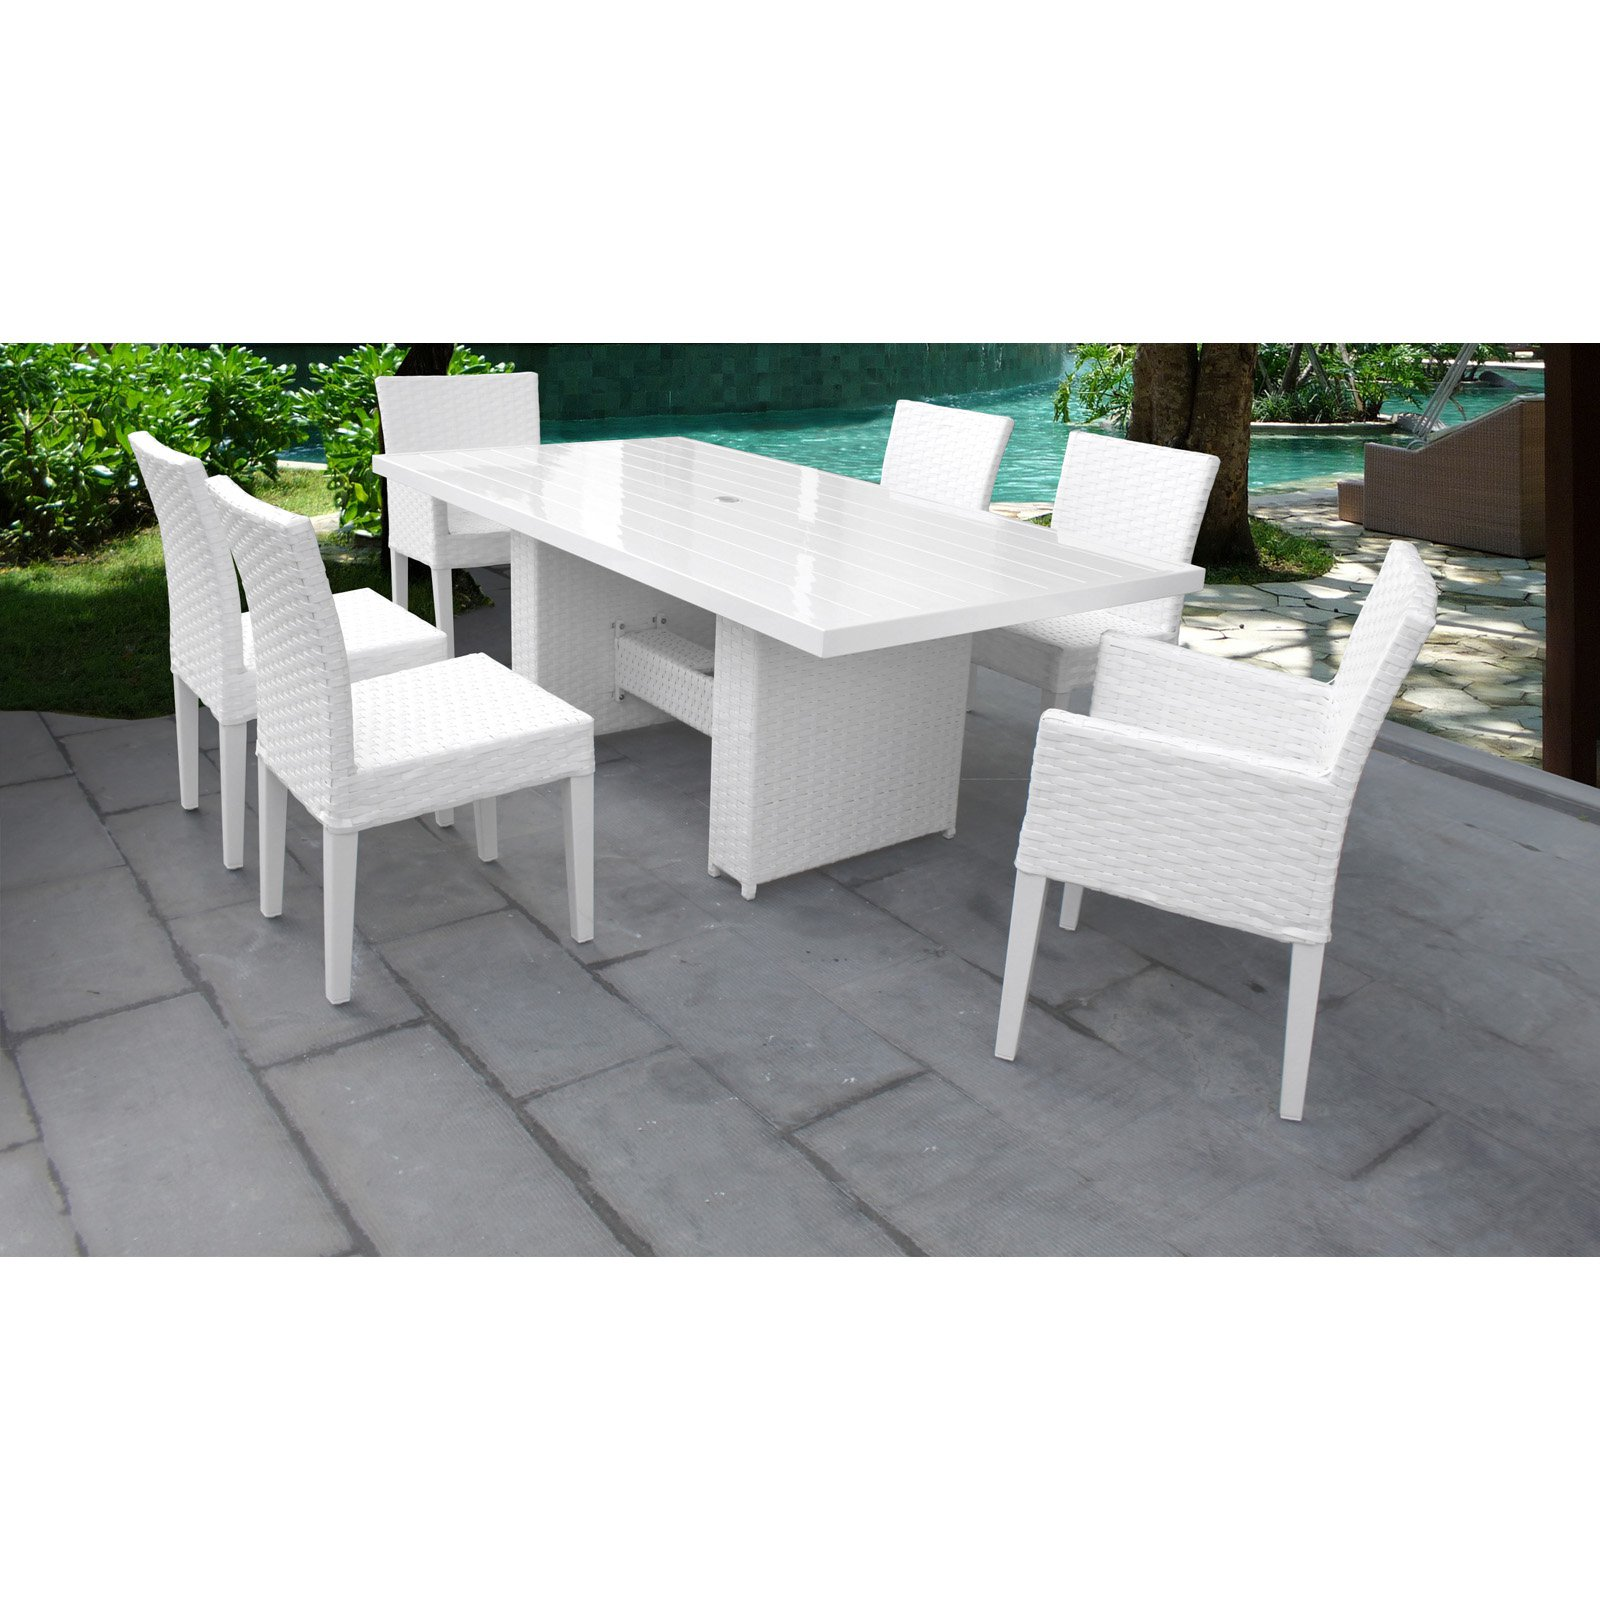 Outdoor Tk Clics Monaco Wicker 7 Piece Patio Dining Set